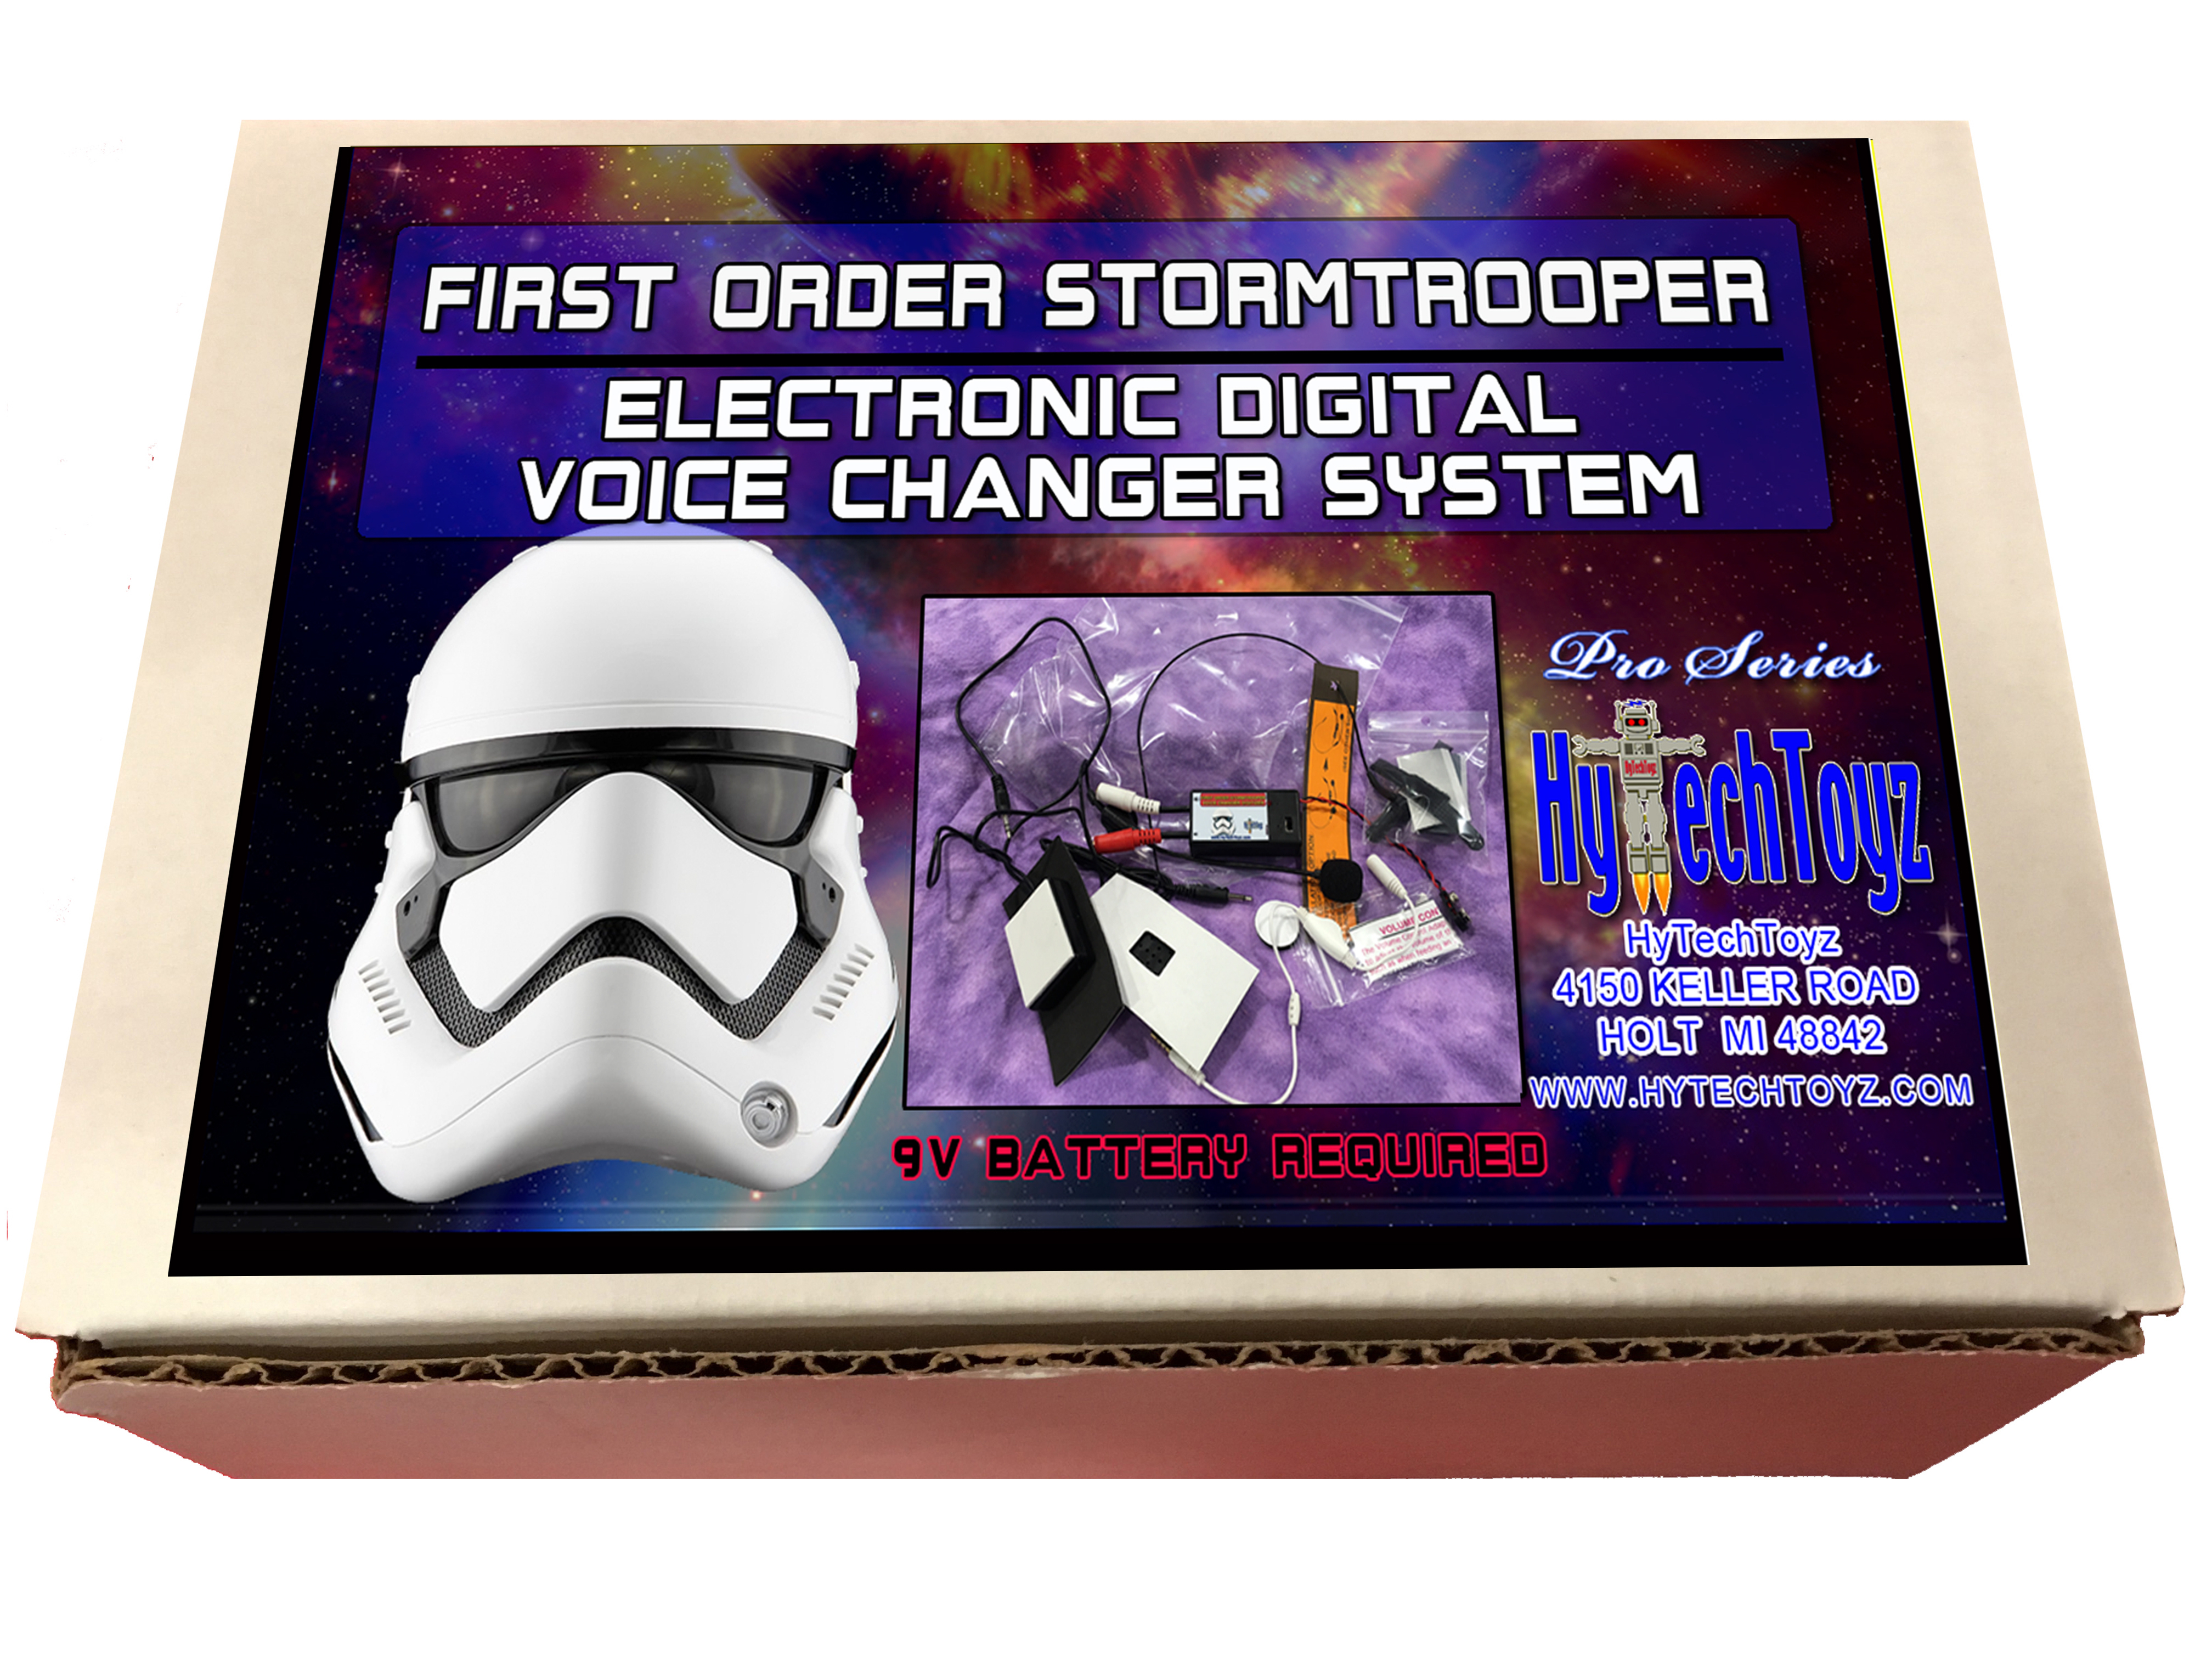 FIRST ORDER STORMTROOPER PRO SERIES BOX